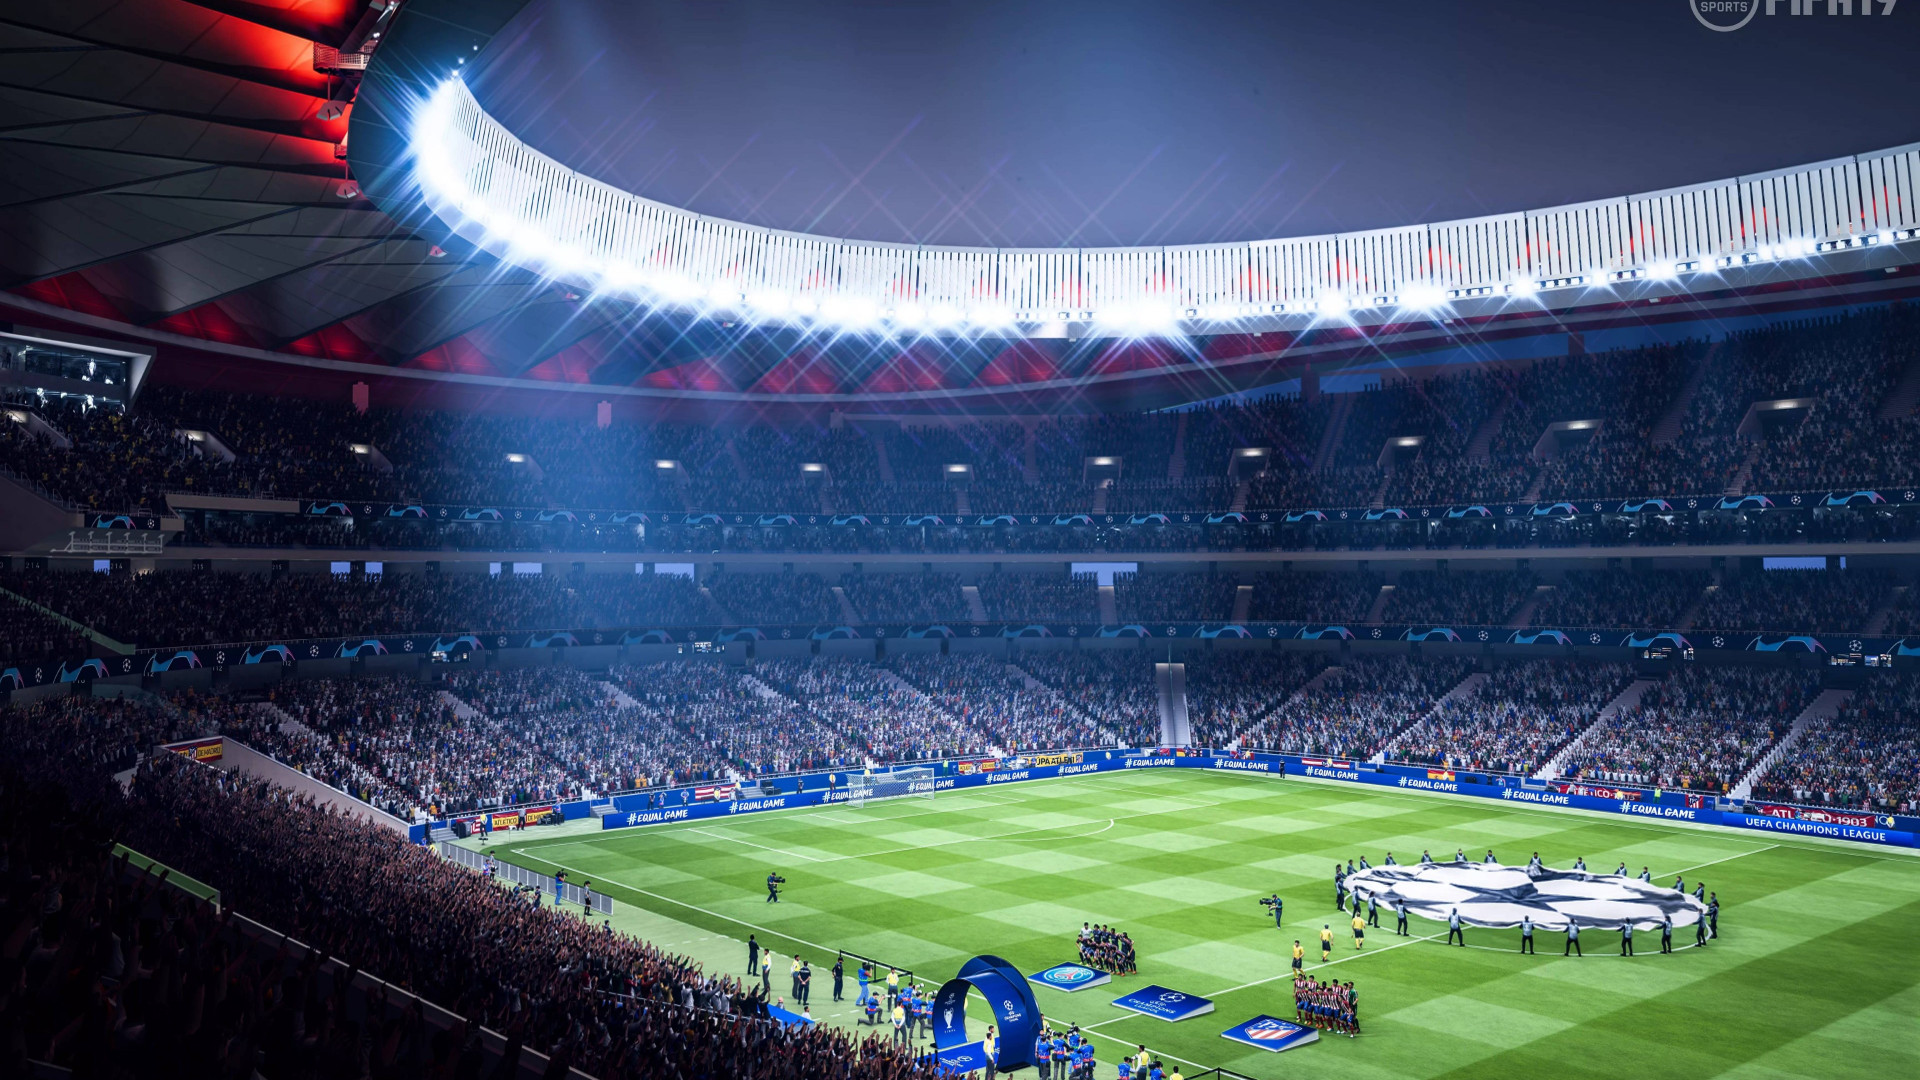 Download wallpaper: Fifa 19 stadium 1920x1080